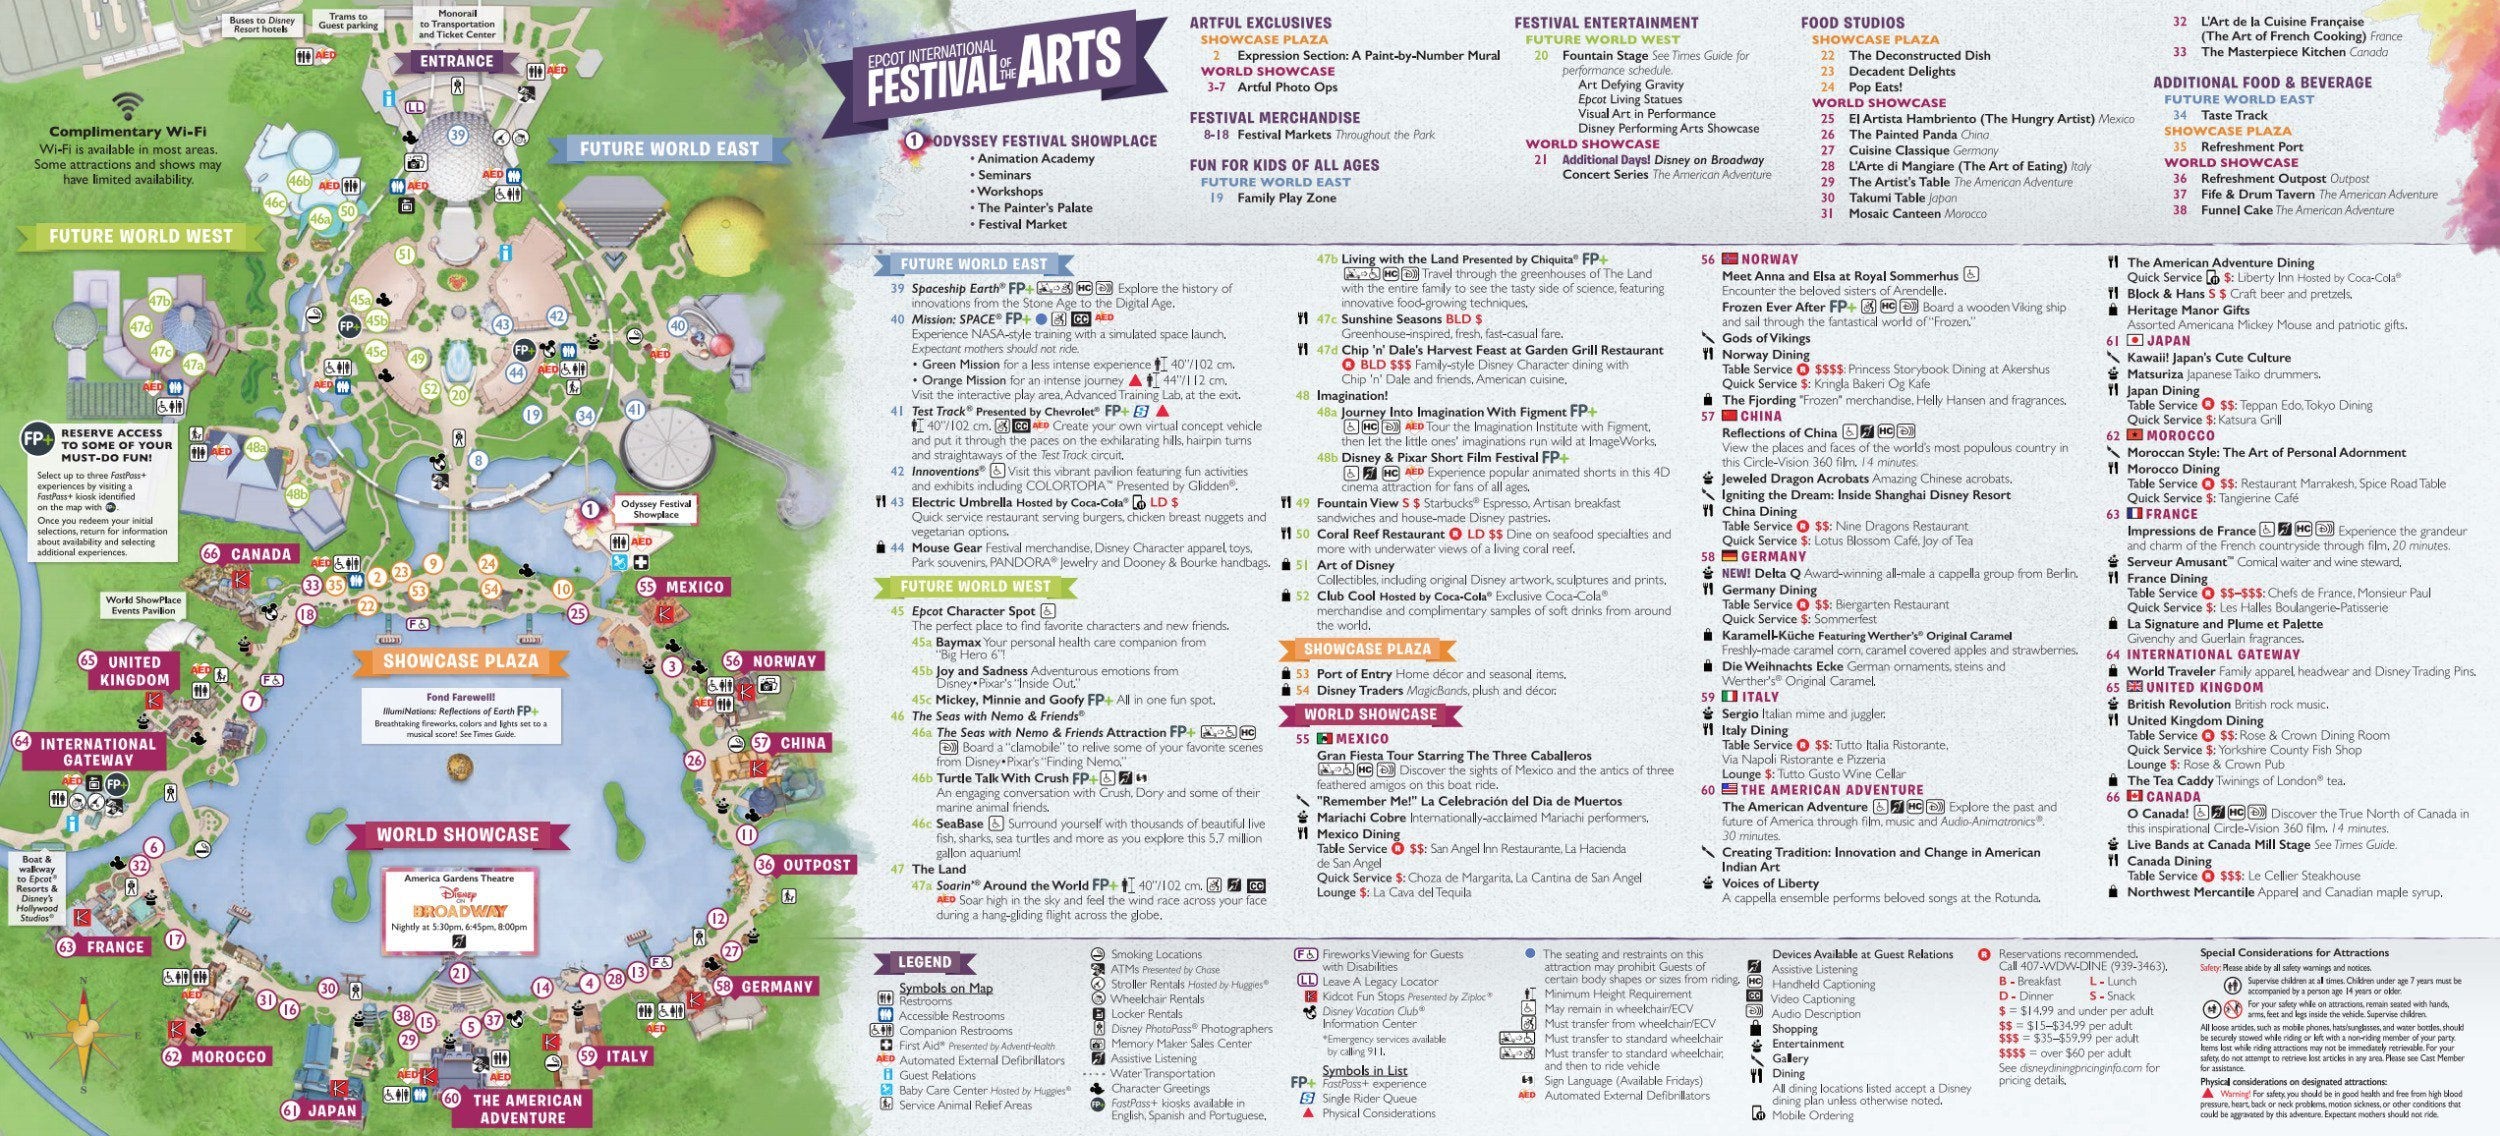 Epcot Festival of the arts map download